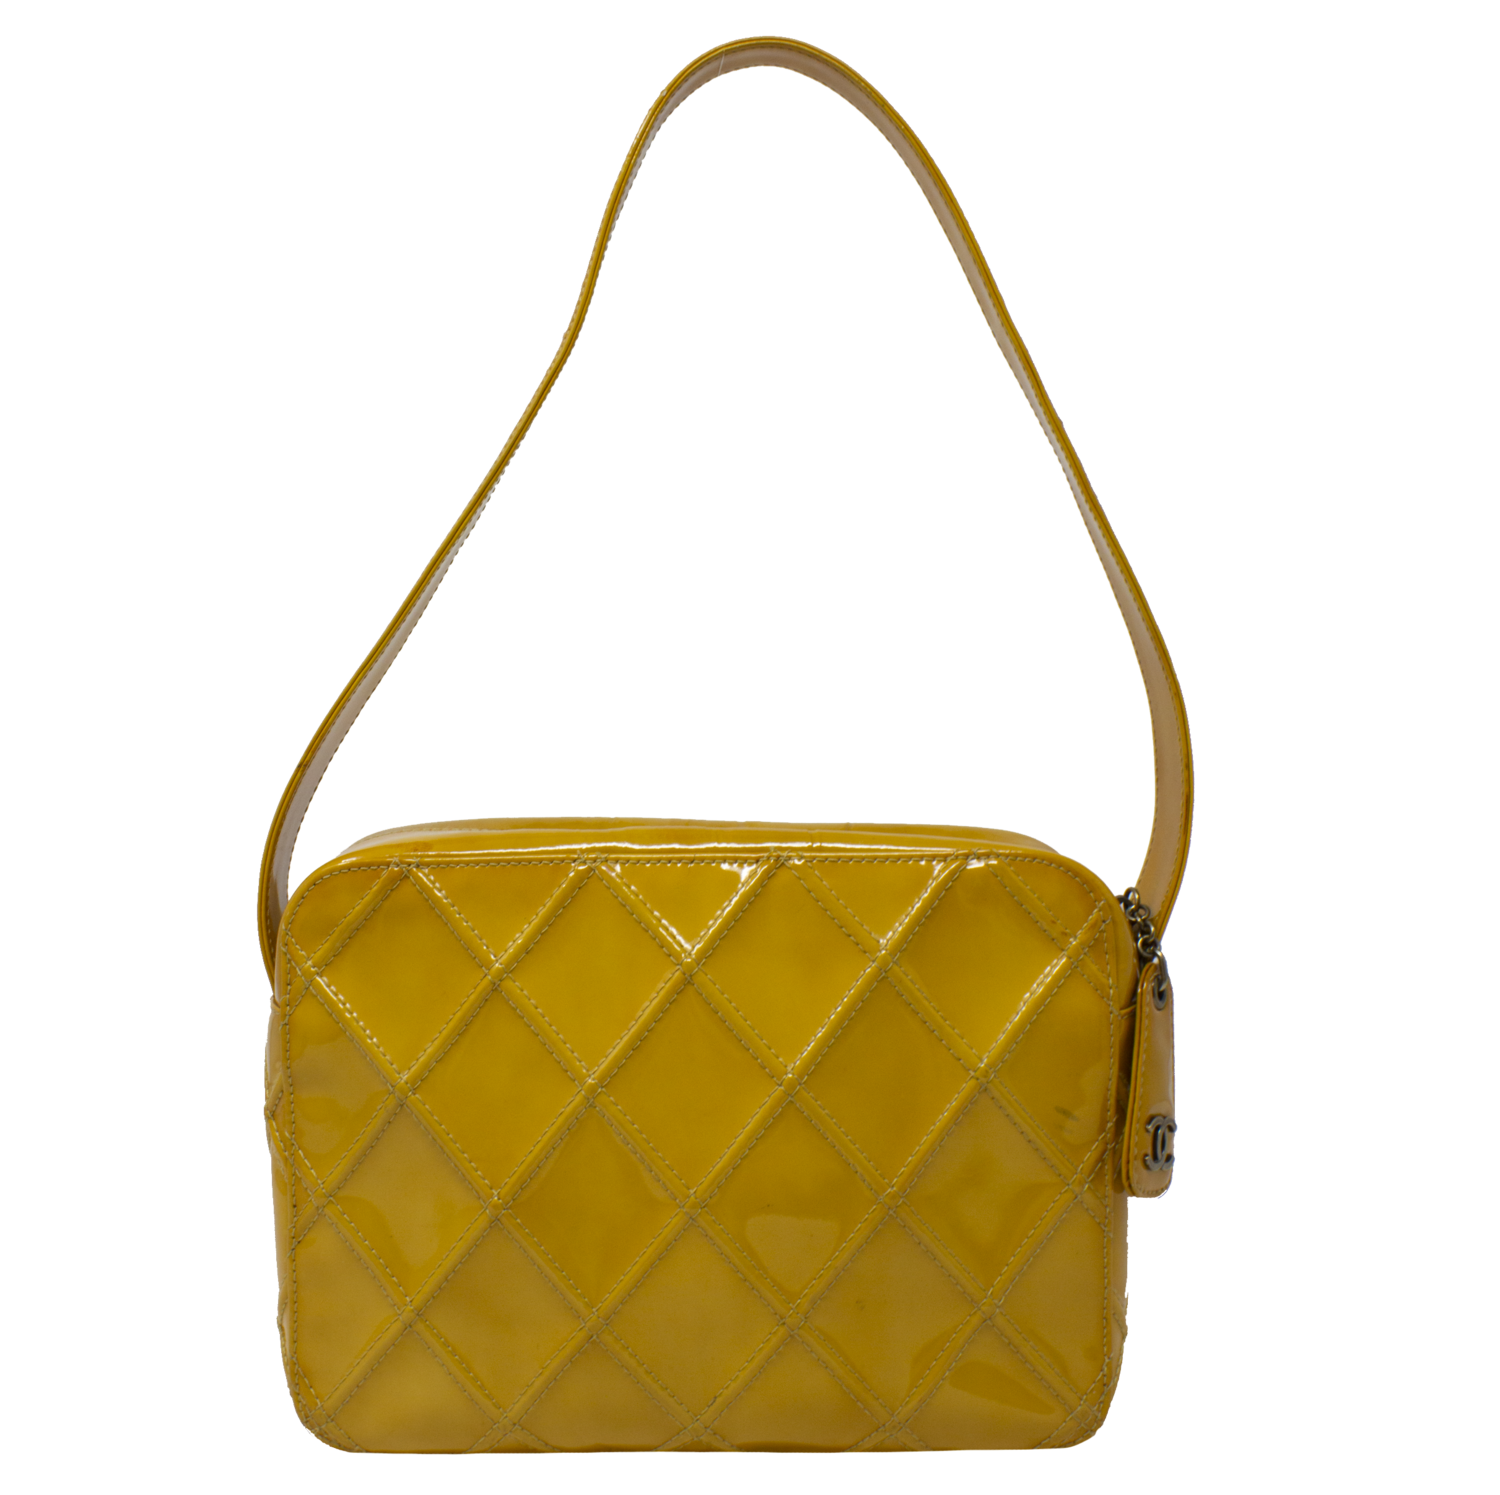 Chanel Yellow Quilted Patent Bag